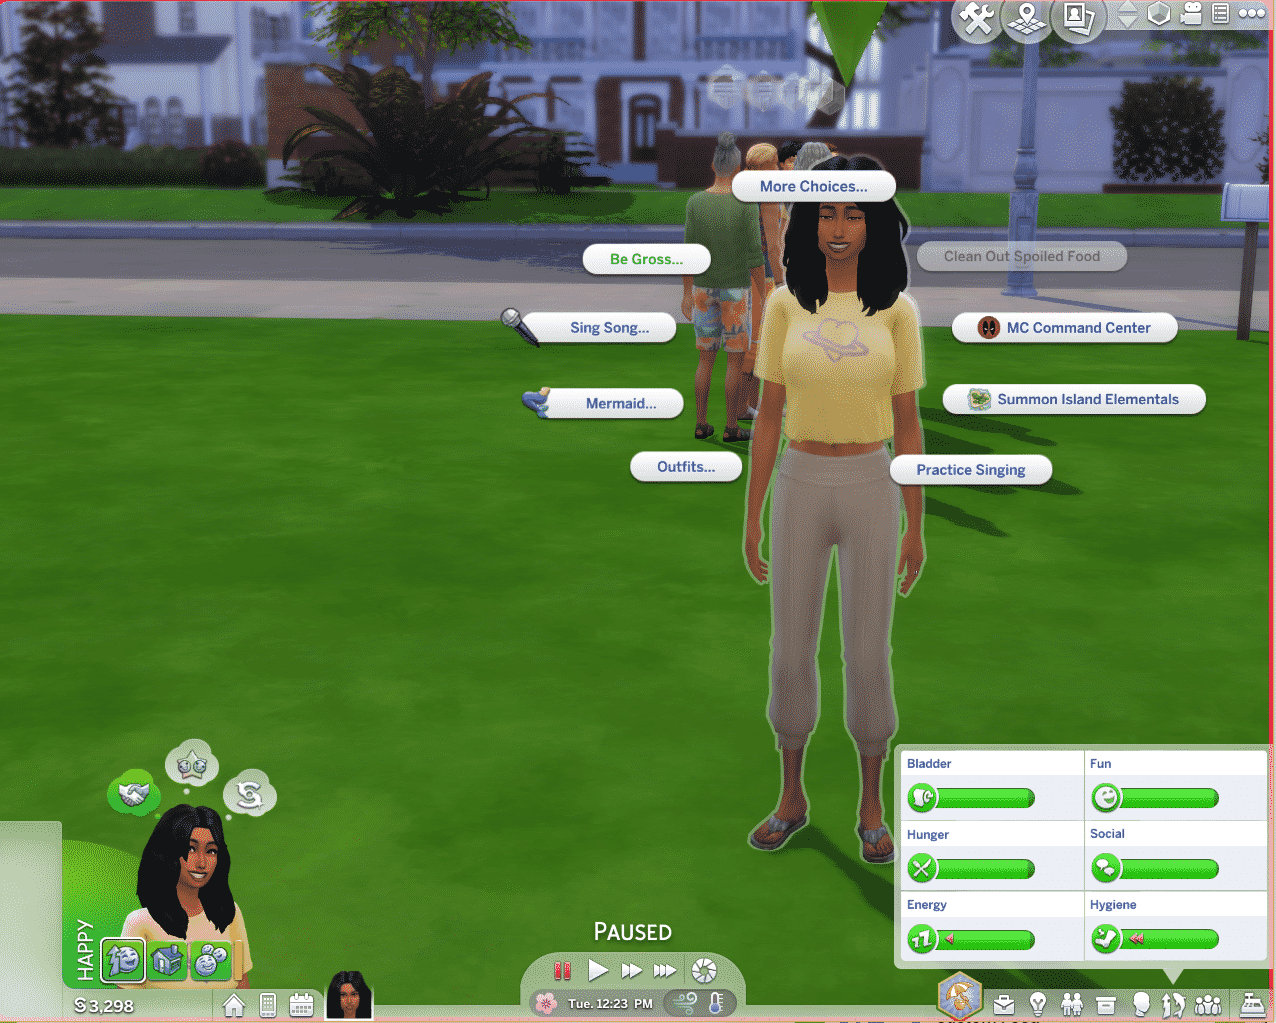 Cheat-Sifat-Sims-Trait